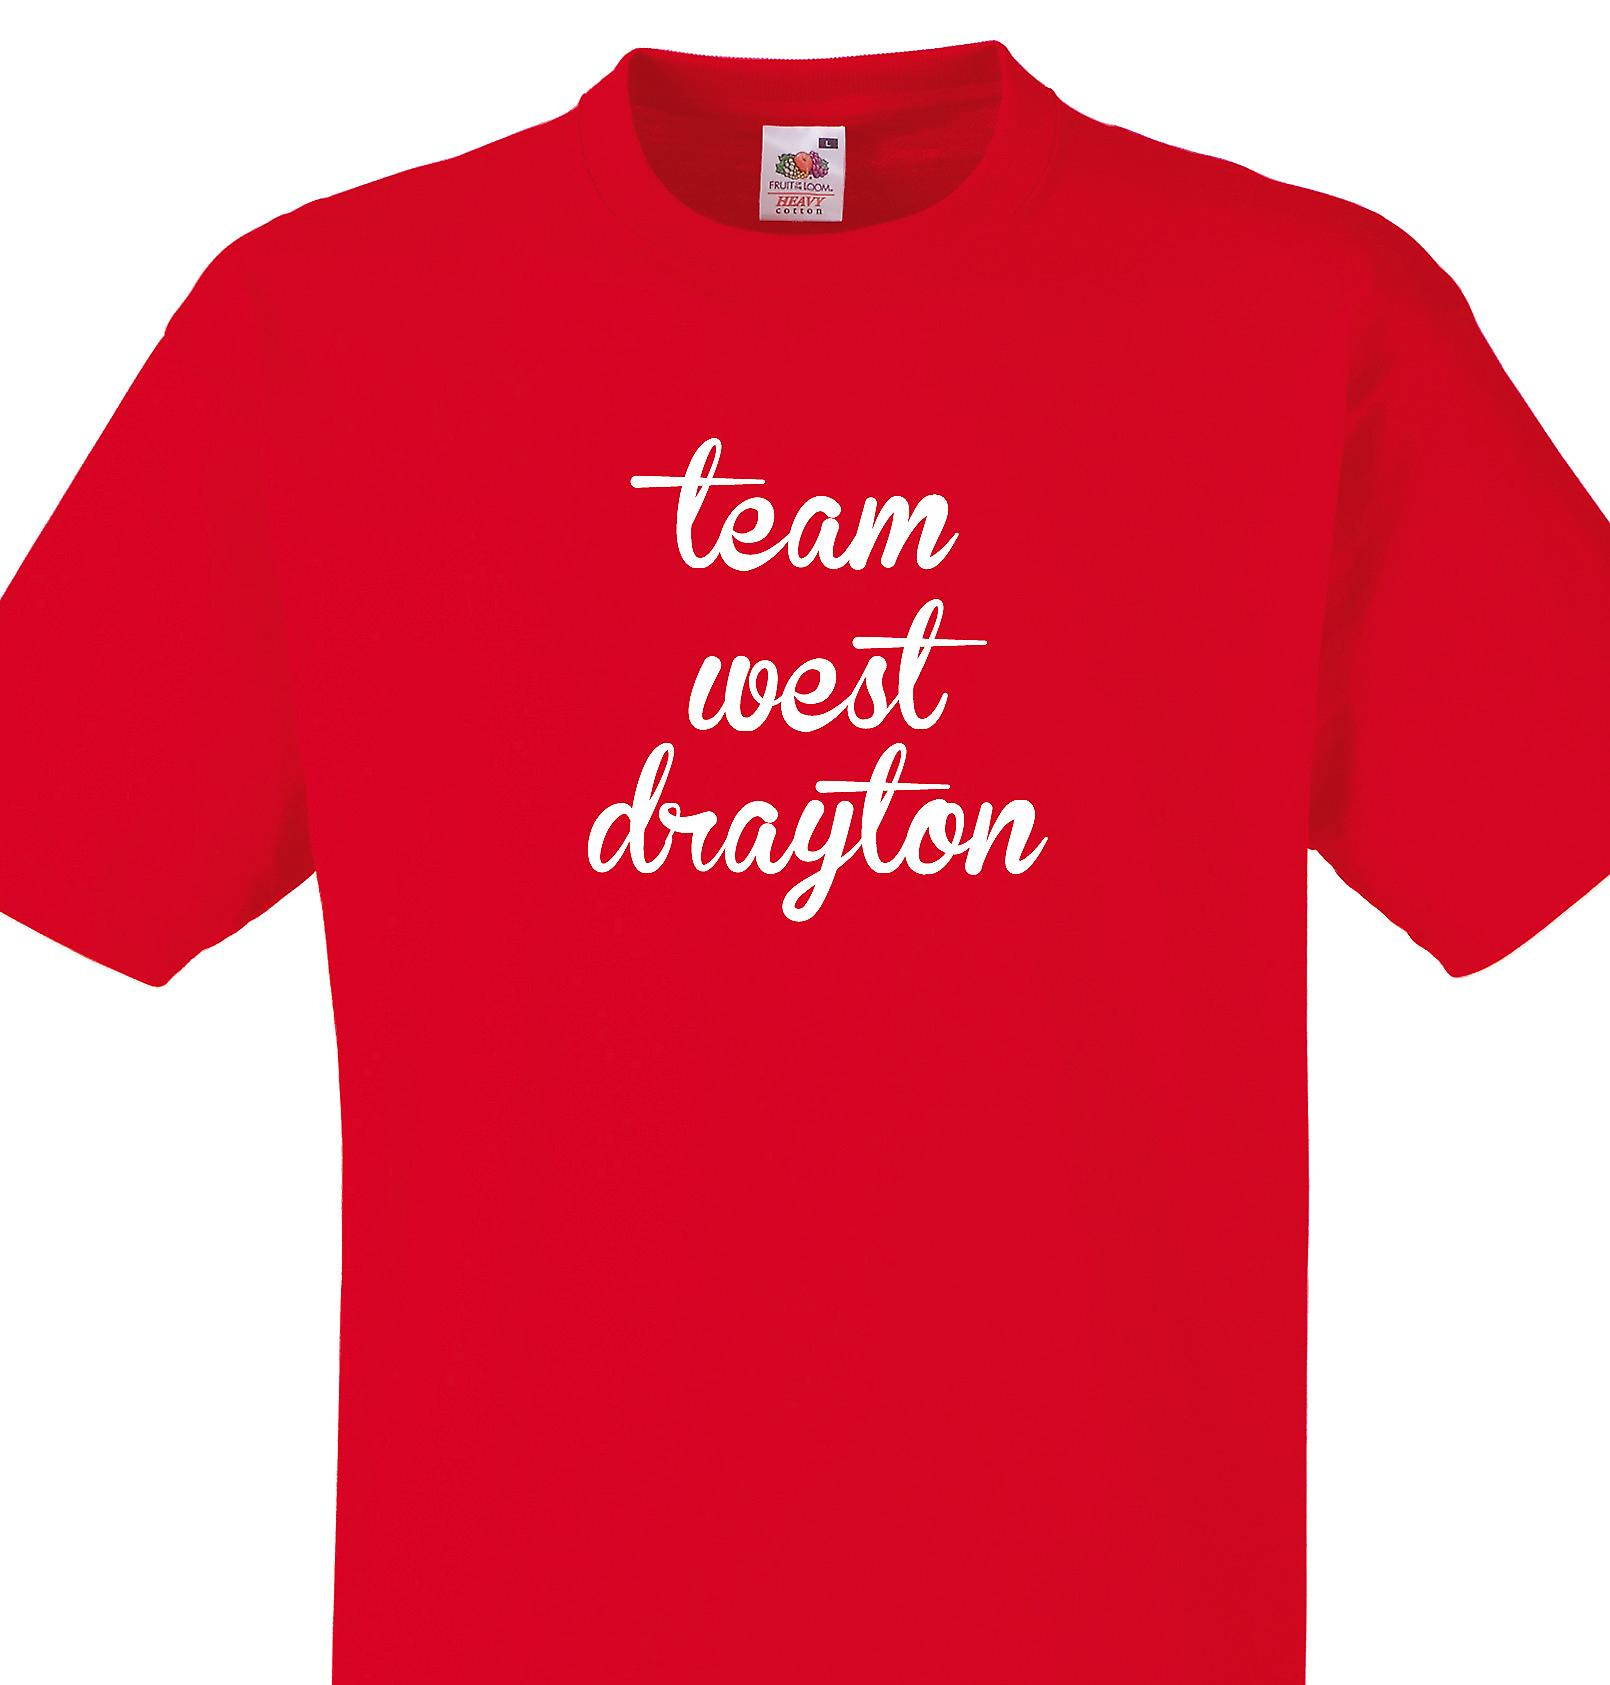 Team West drayton Red T shirt